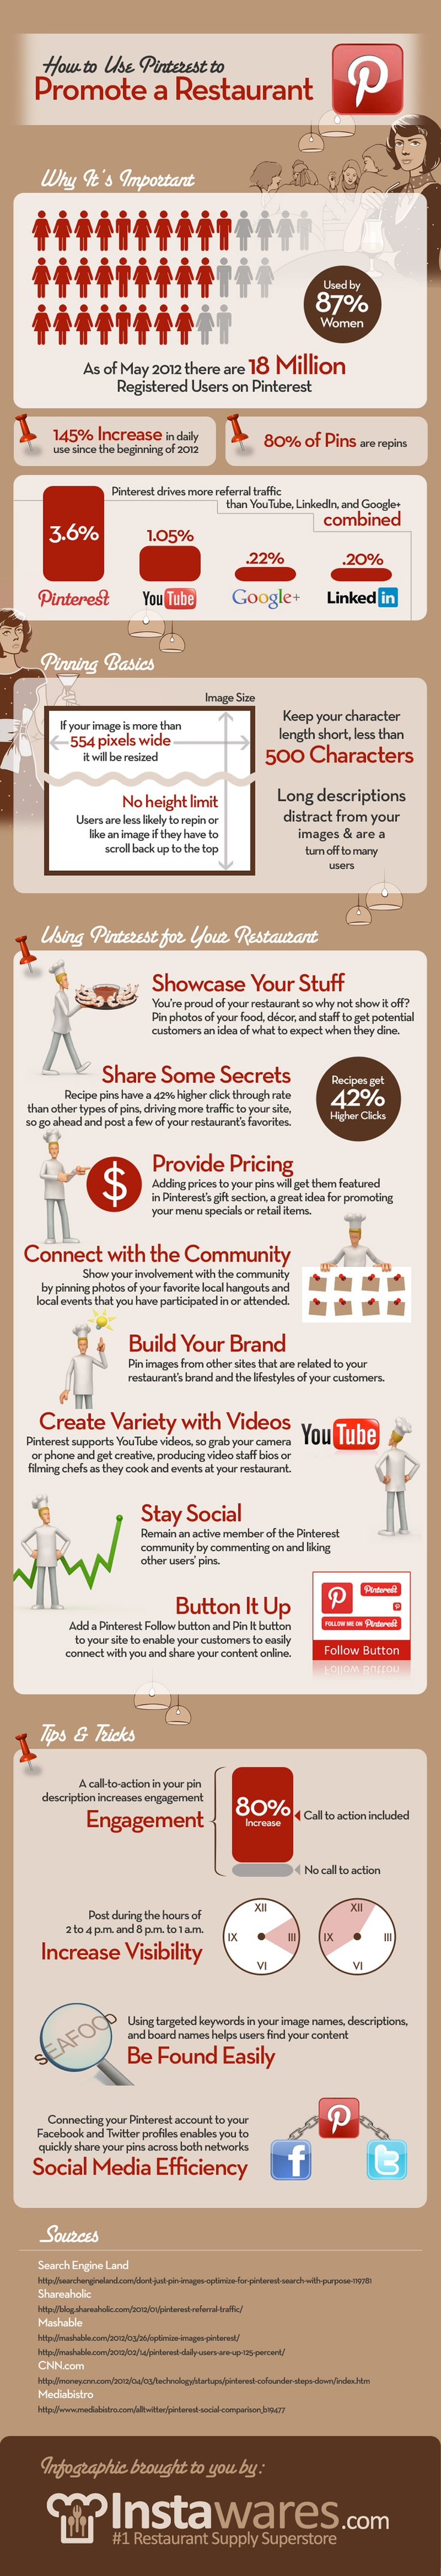 17 Pinterest Marketing Tips for Restaurants